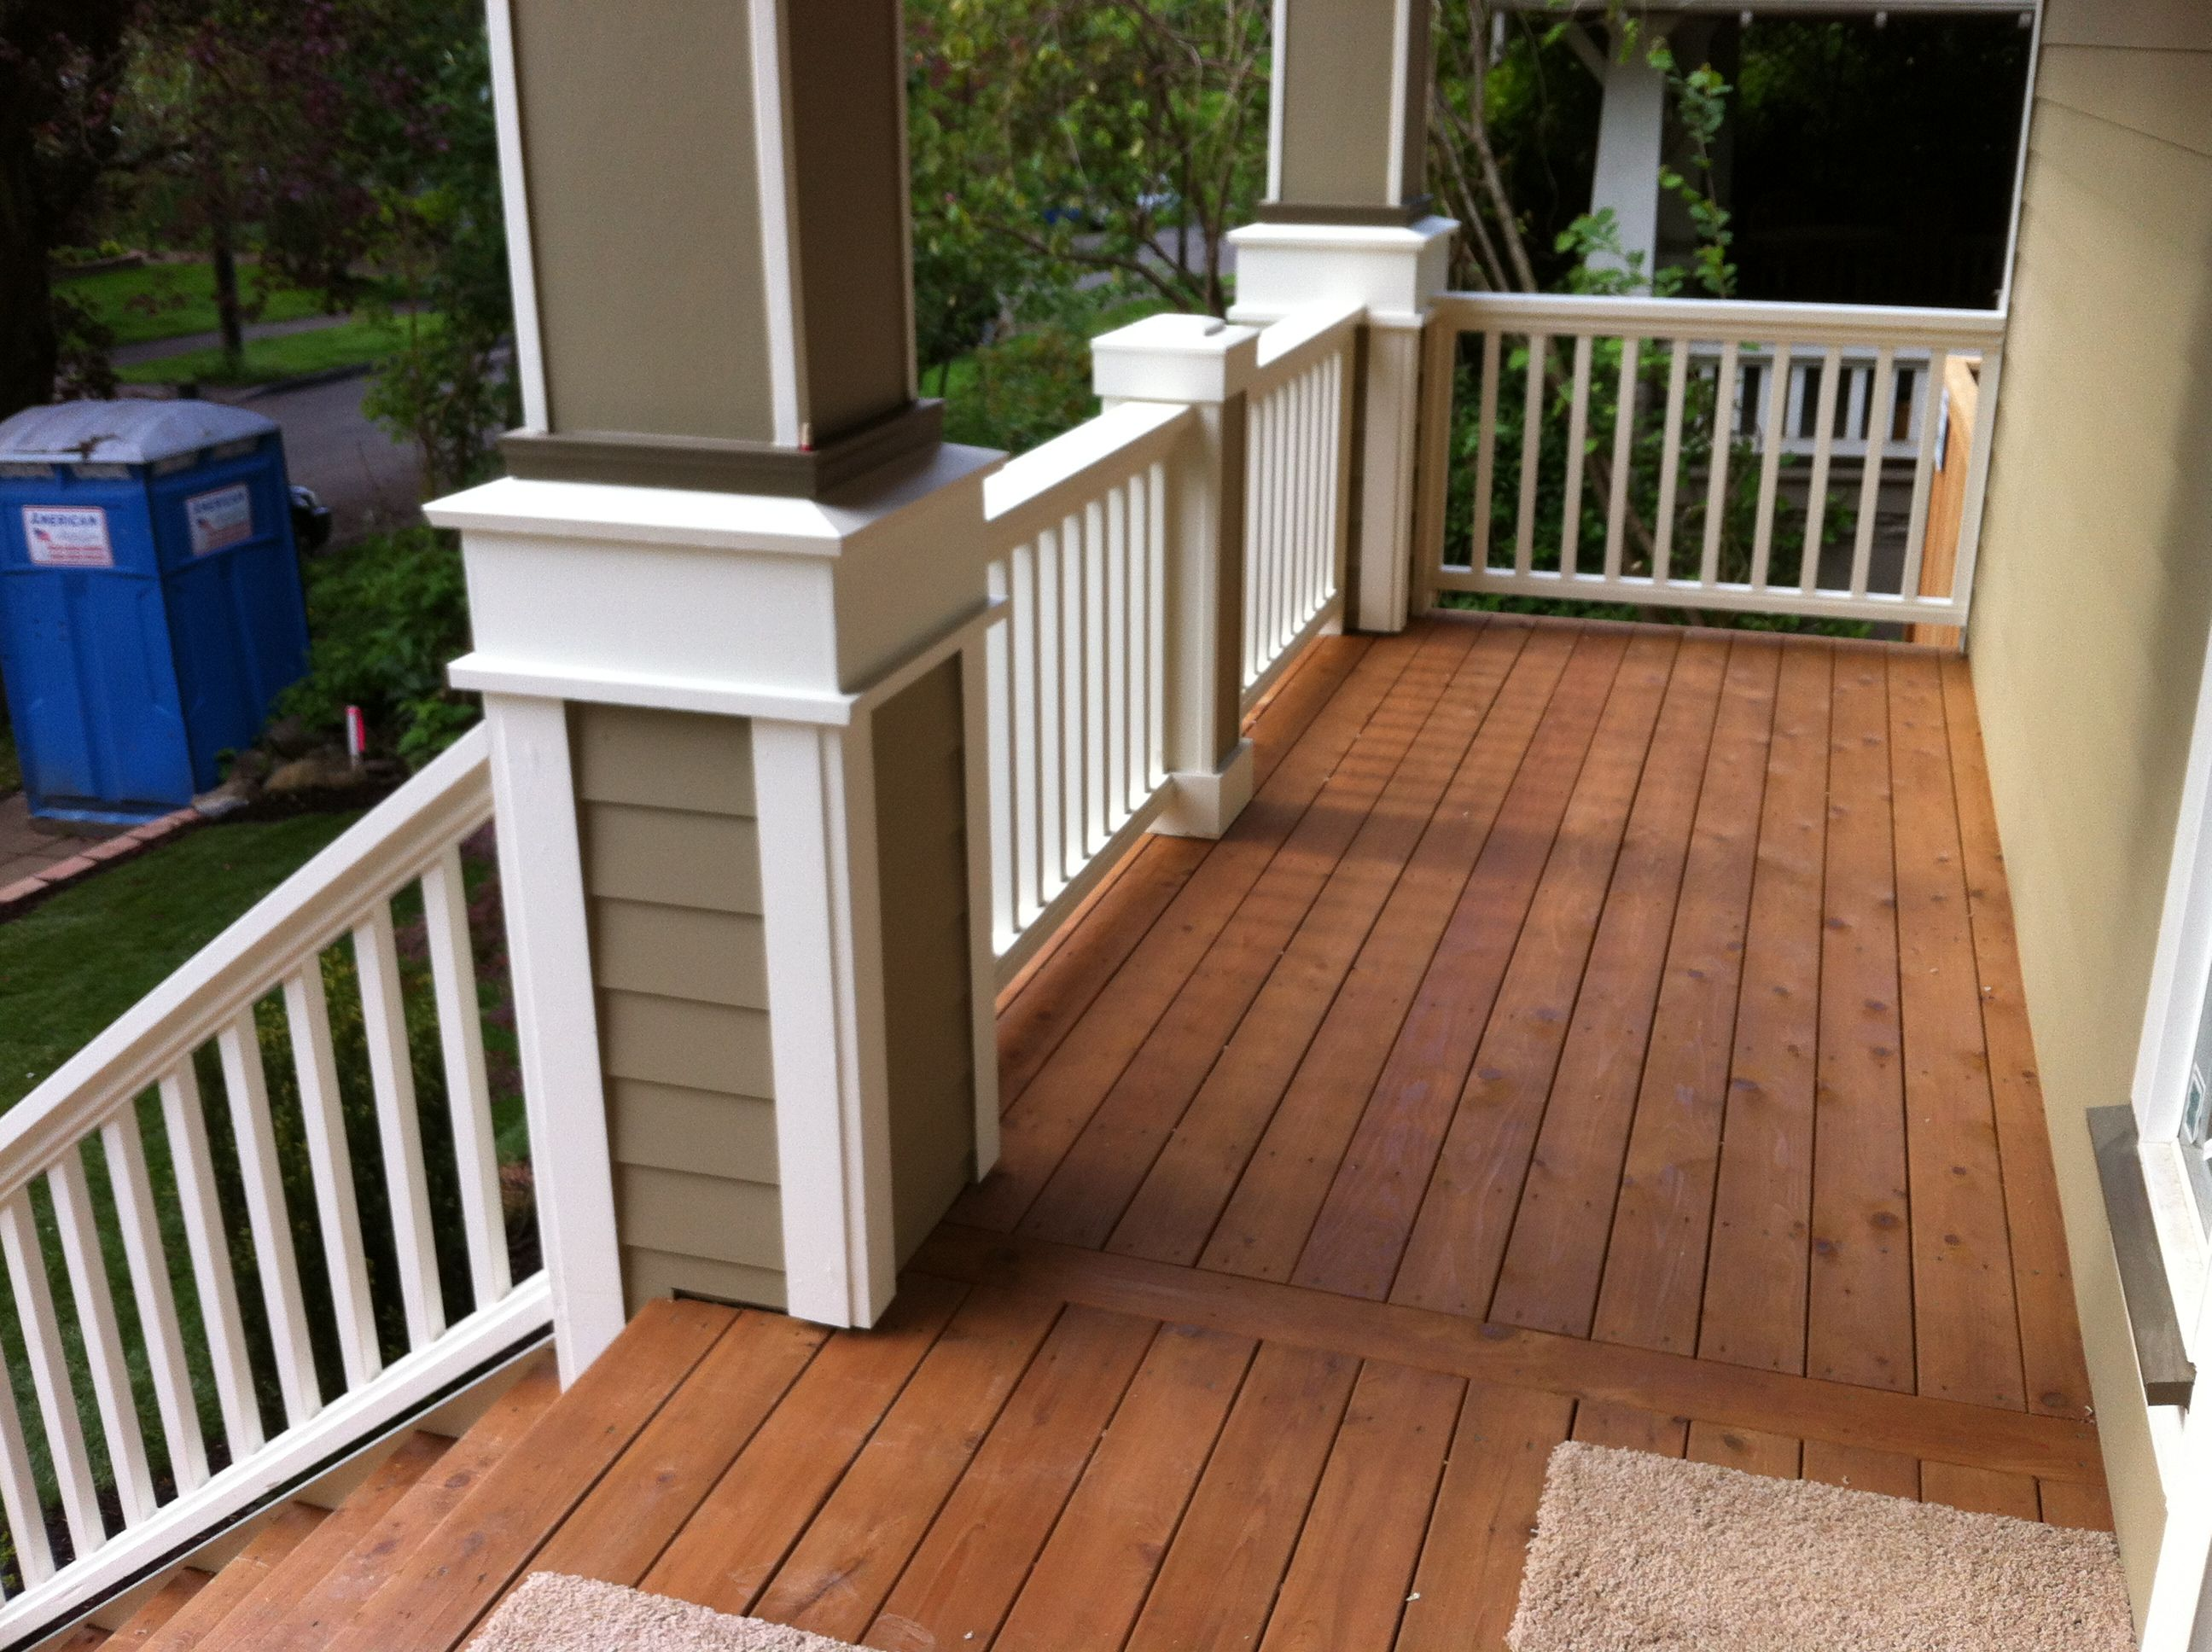 image chic set patio precious together and with horizontal s zq styles genuine ideas then porch railing designs style deck